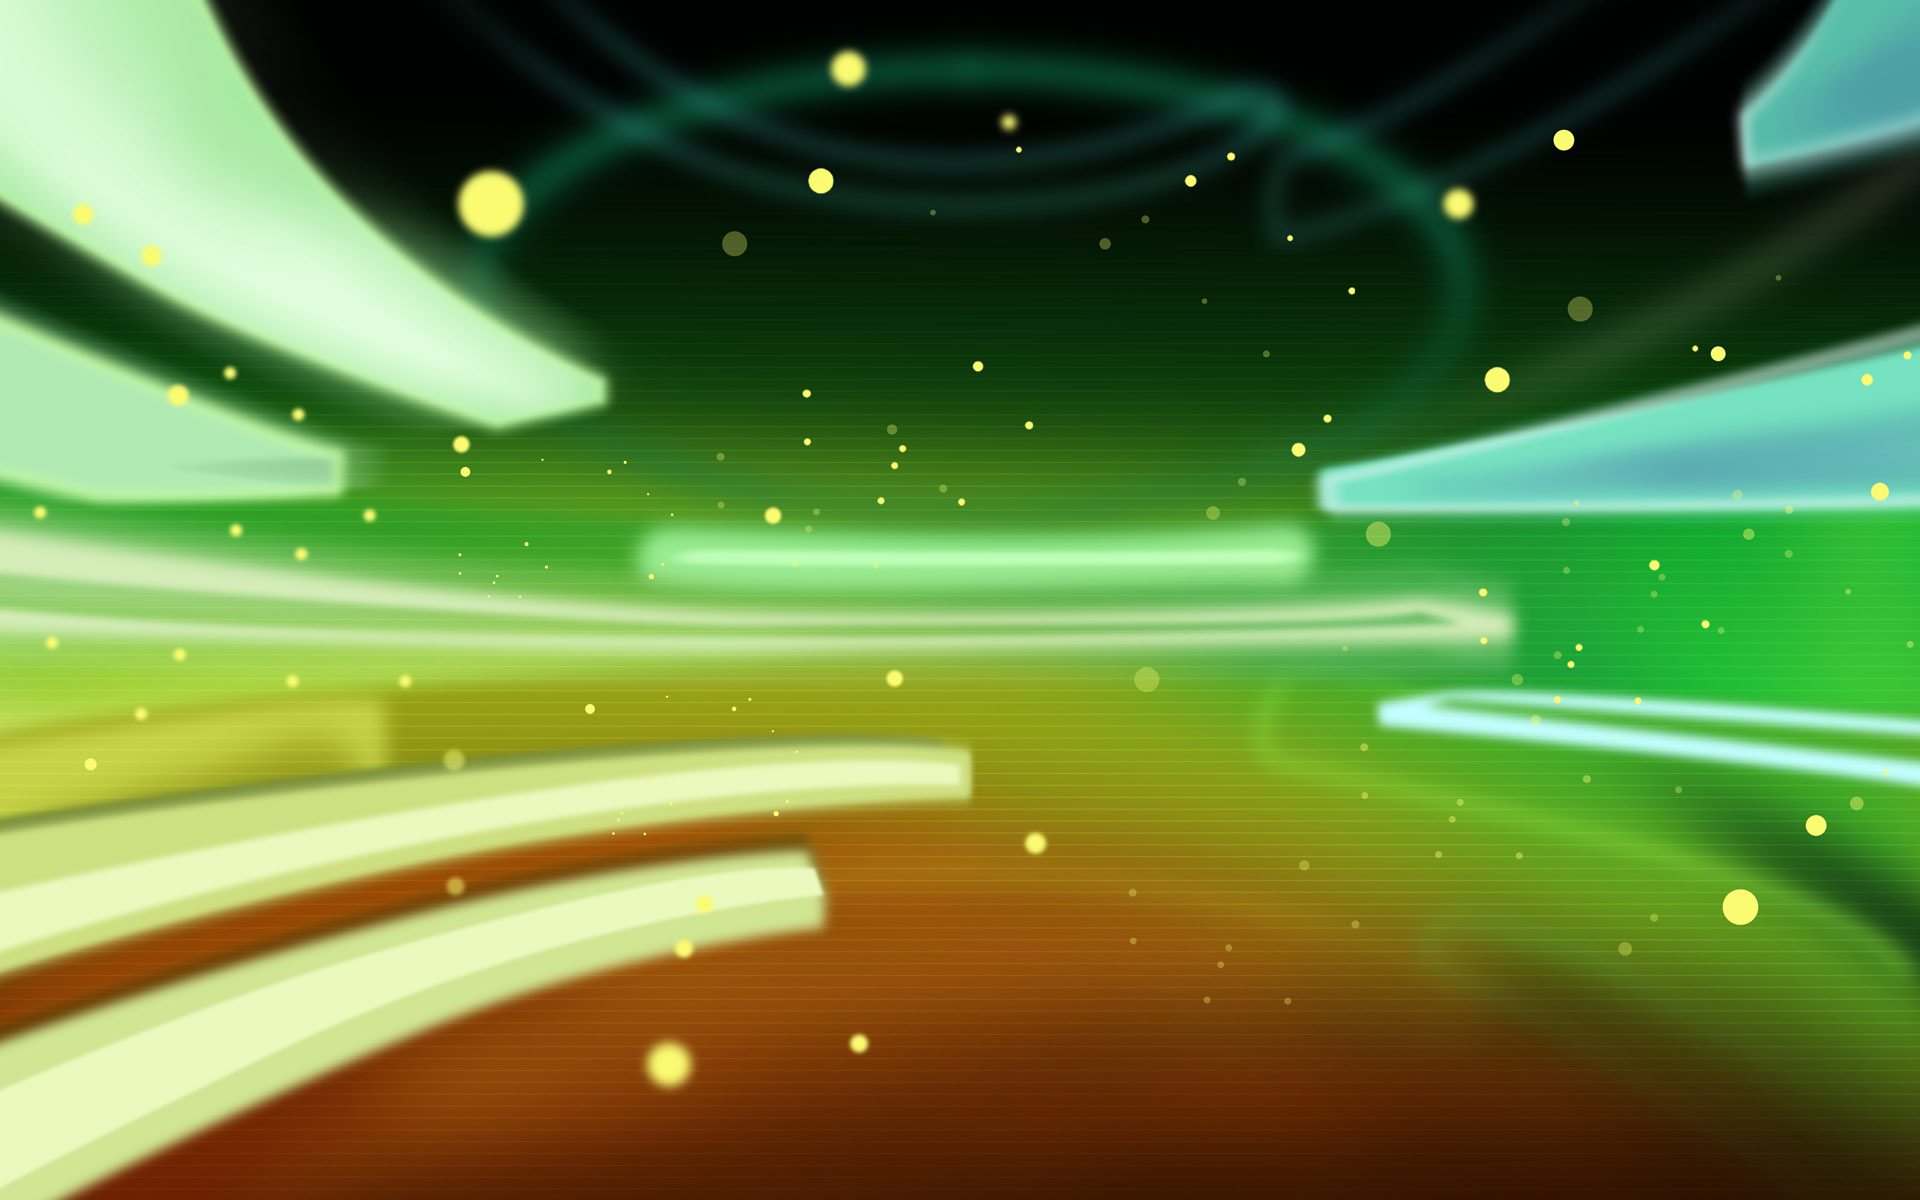 Colorful background of high-definition 21083